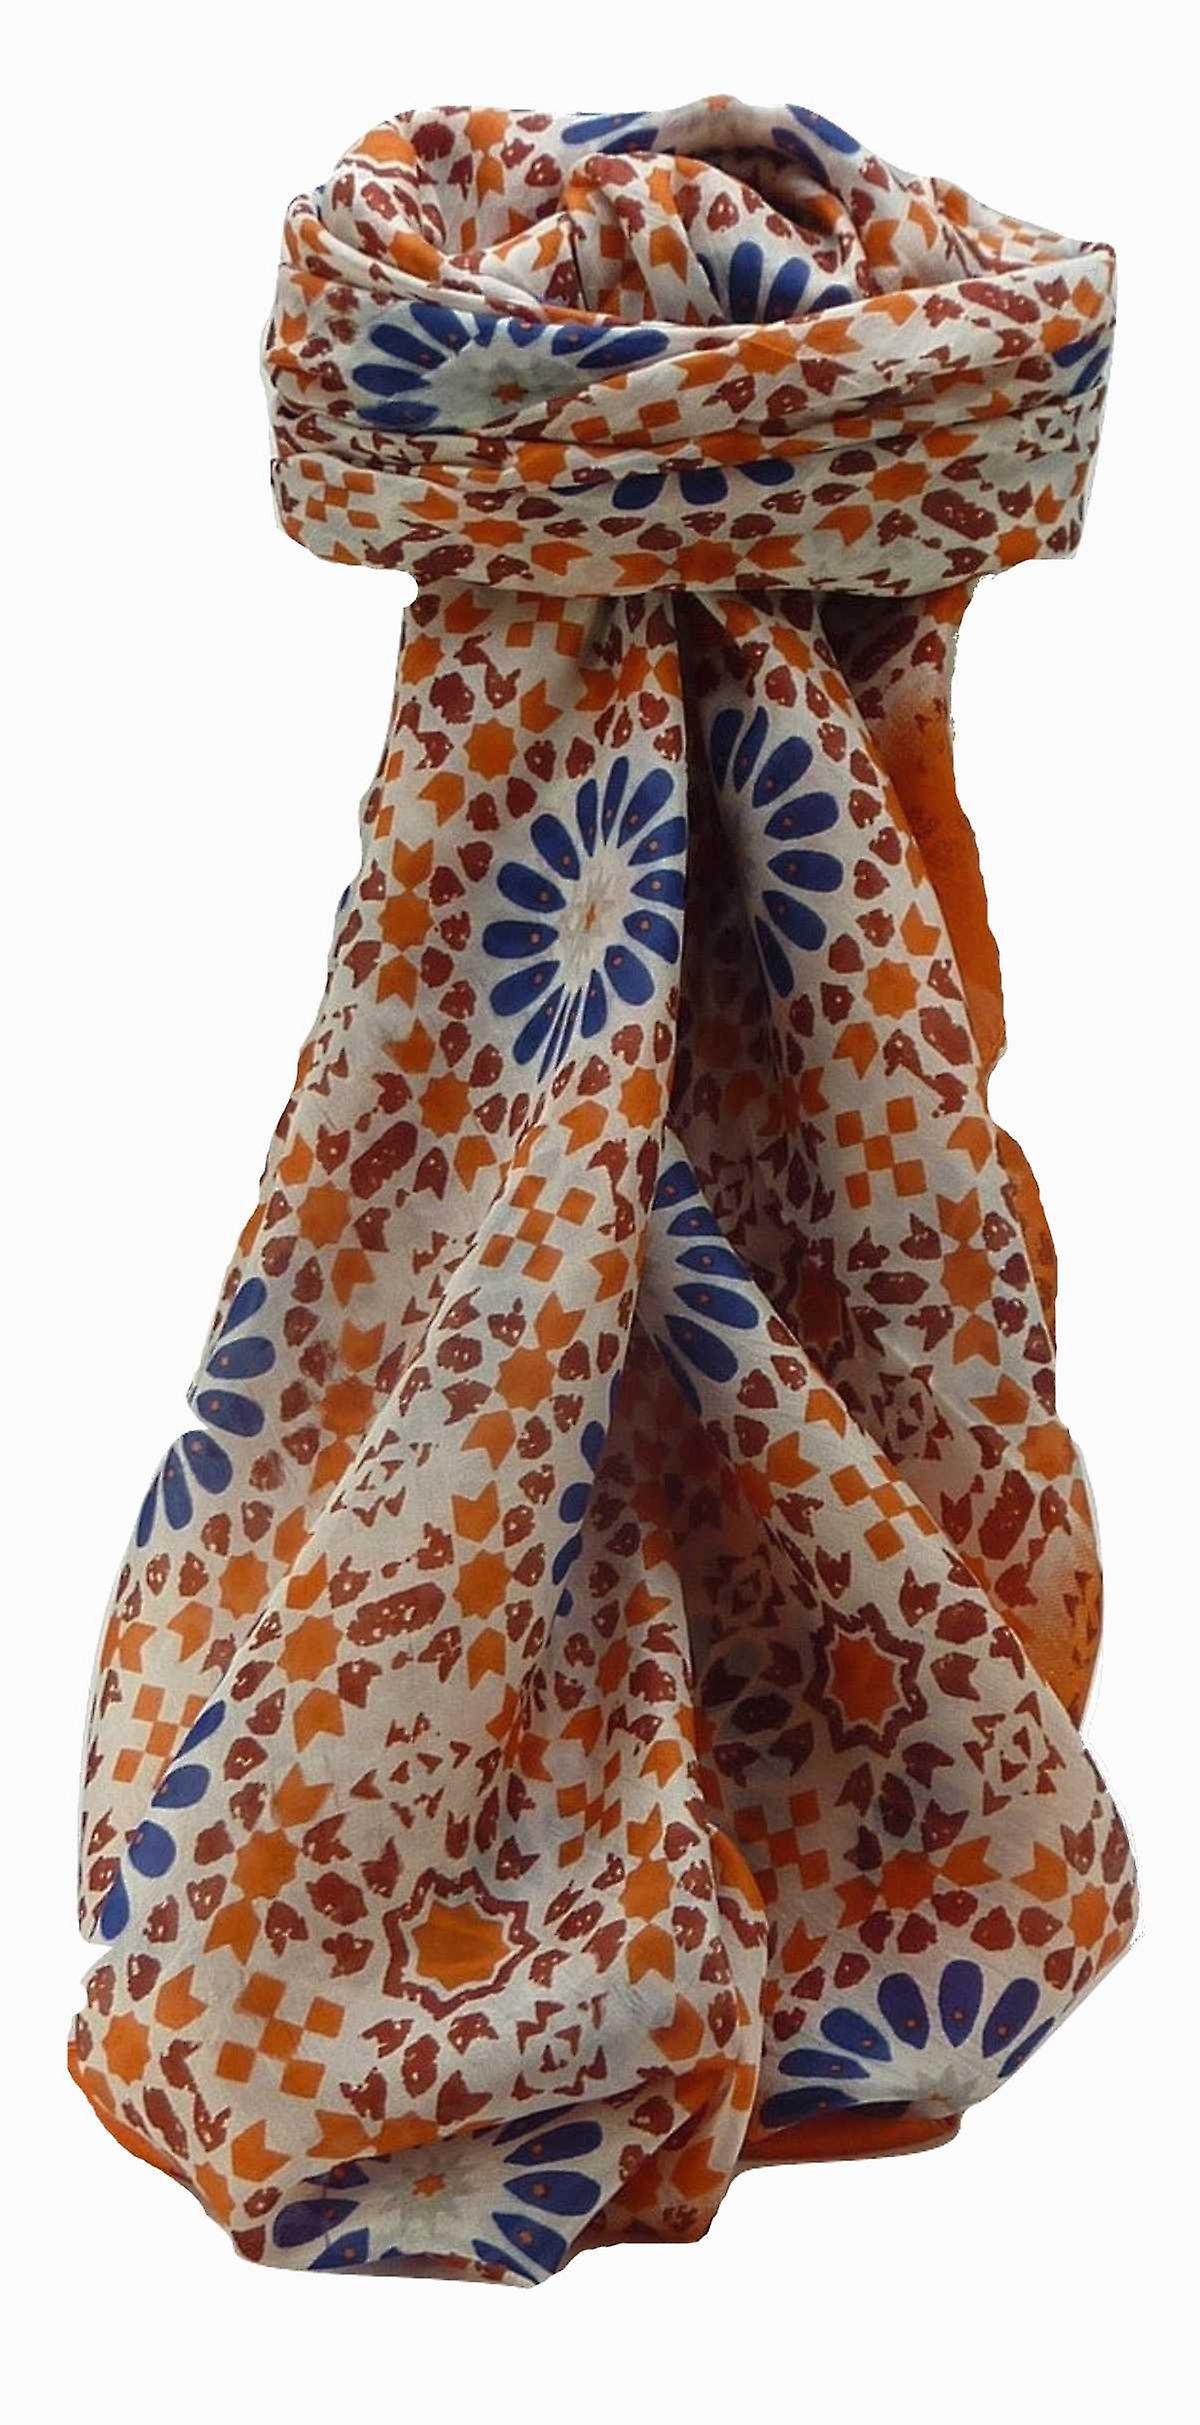 Mulberry Silk Contemporary Square Scarf Geometric G122 by Pashmina & Silk